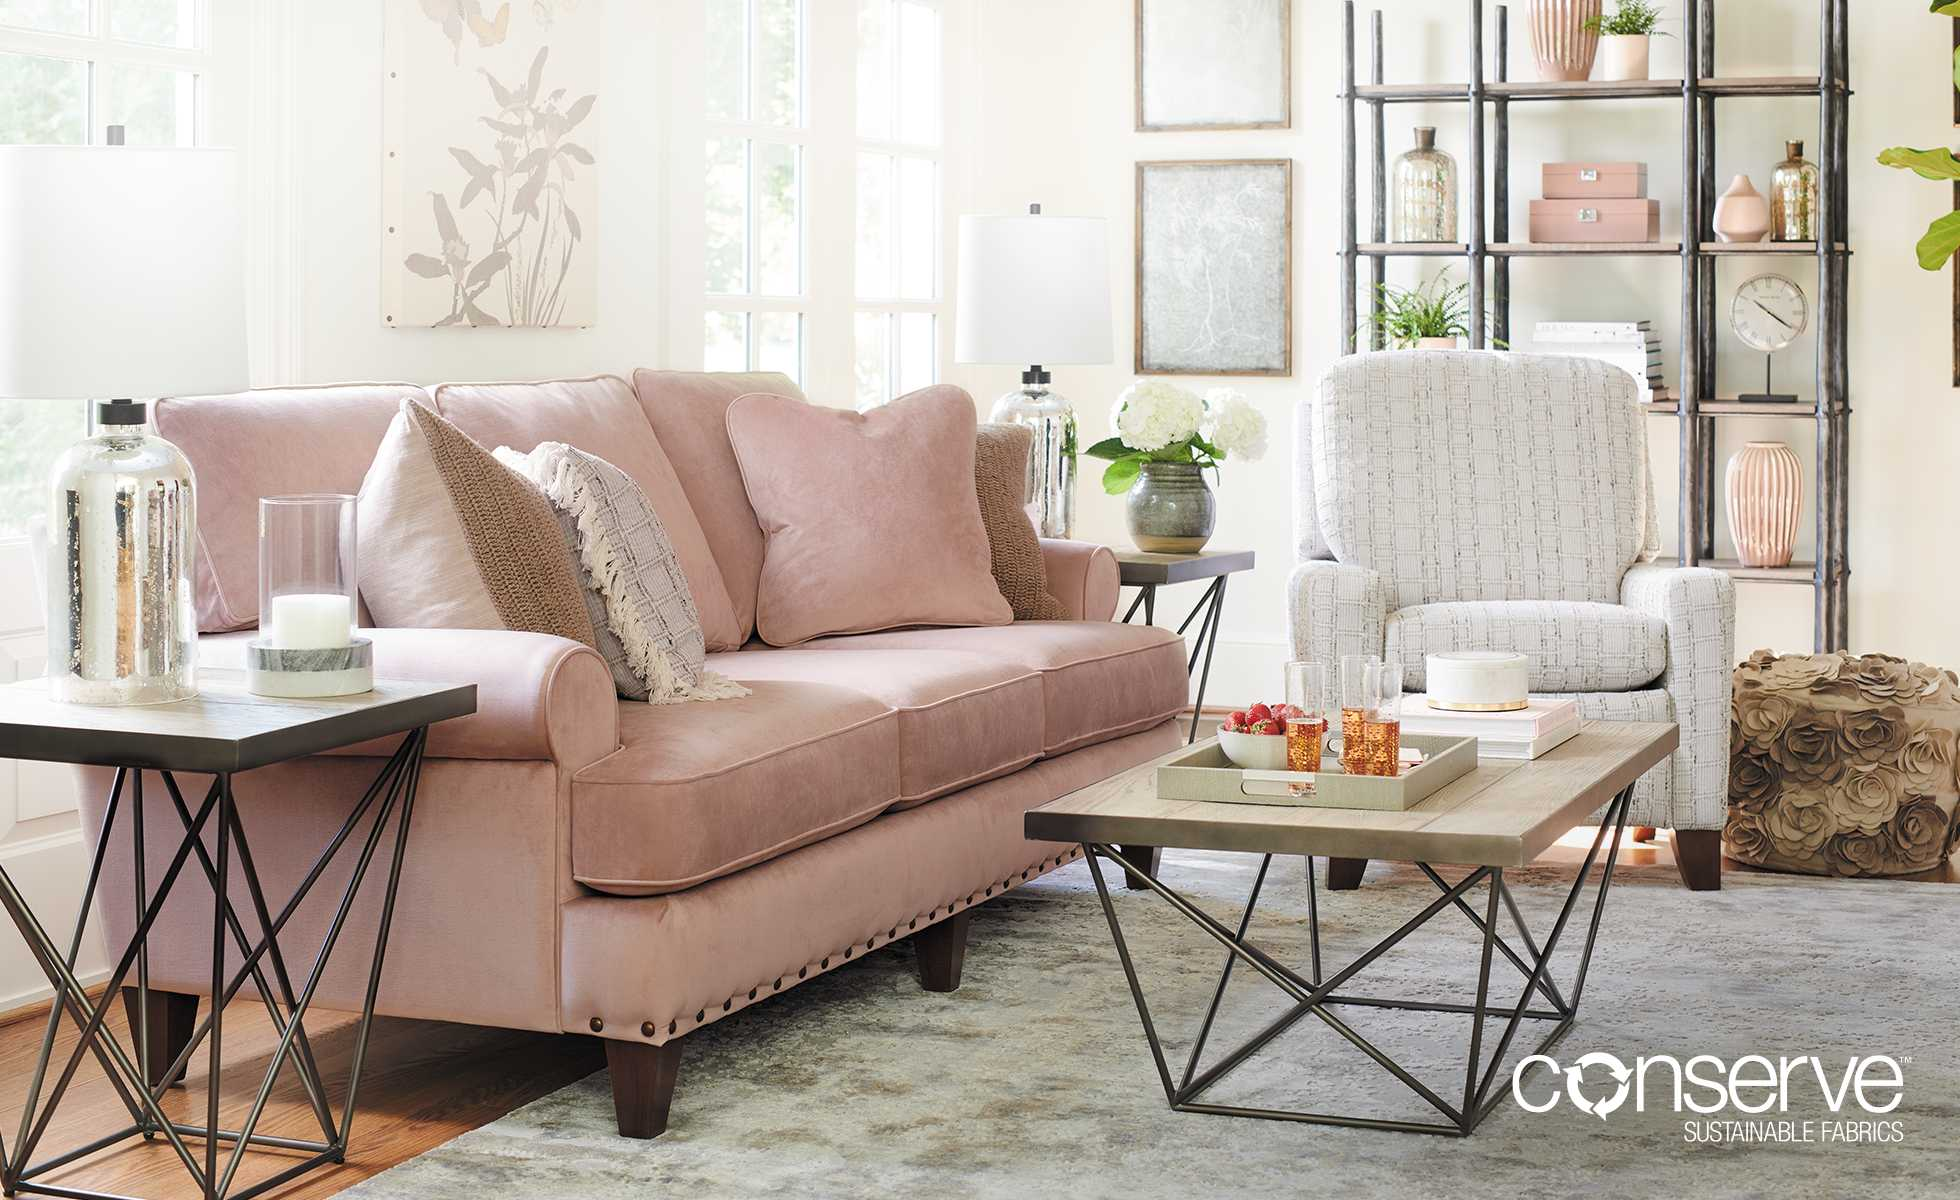 Living room with Porter Sofa and Cabot Reclining Chair covered in conserve Sustainable Fabrics